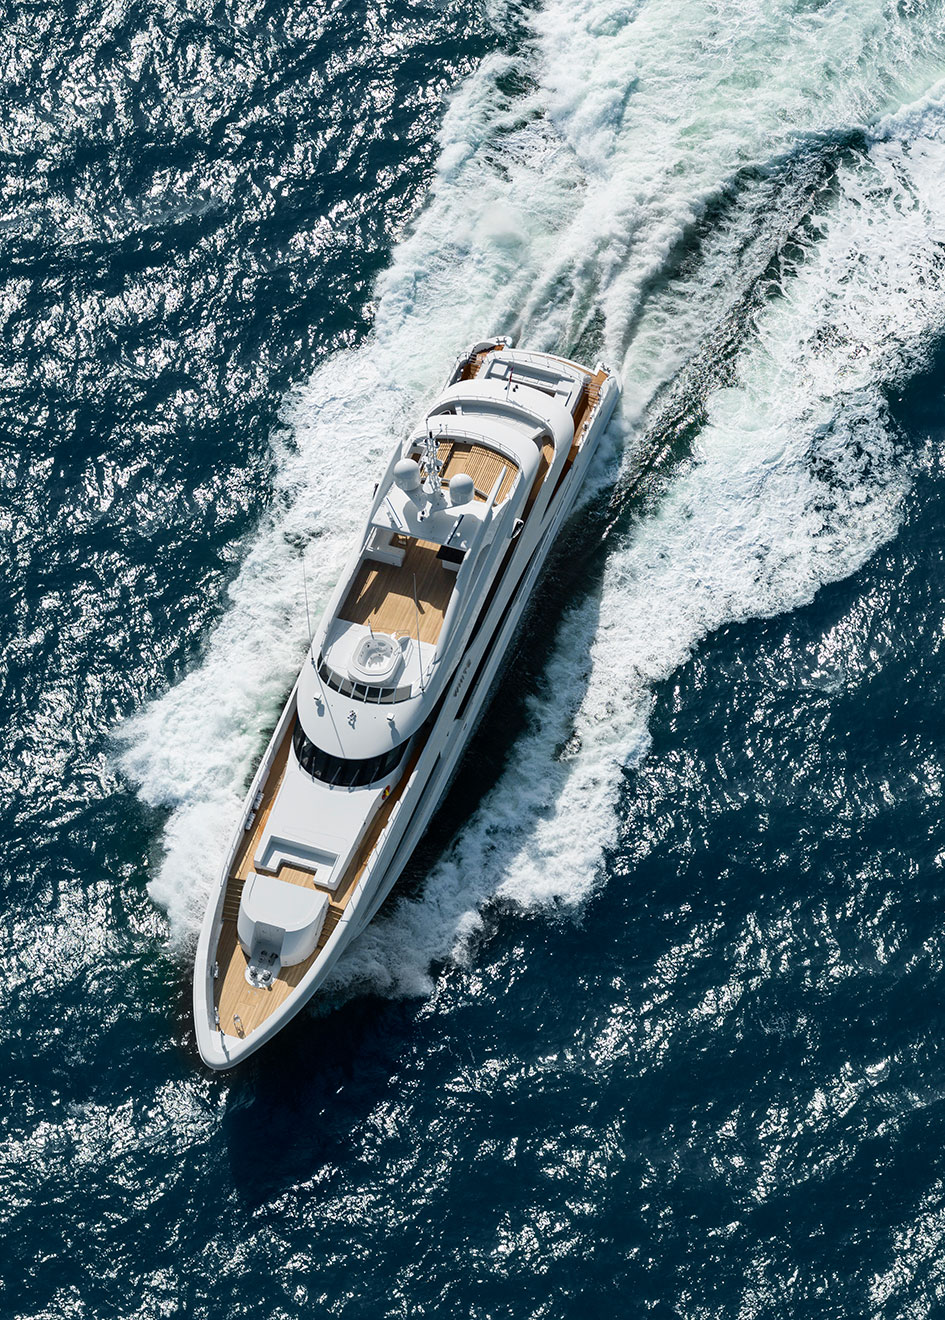 aerial-view-of-the-heesen-super-yacht-white-credit-dick-holthuis